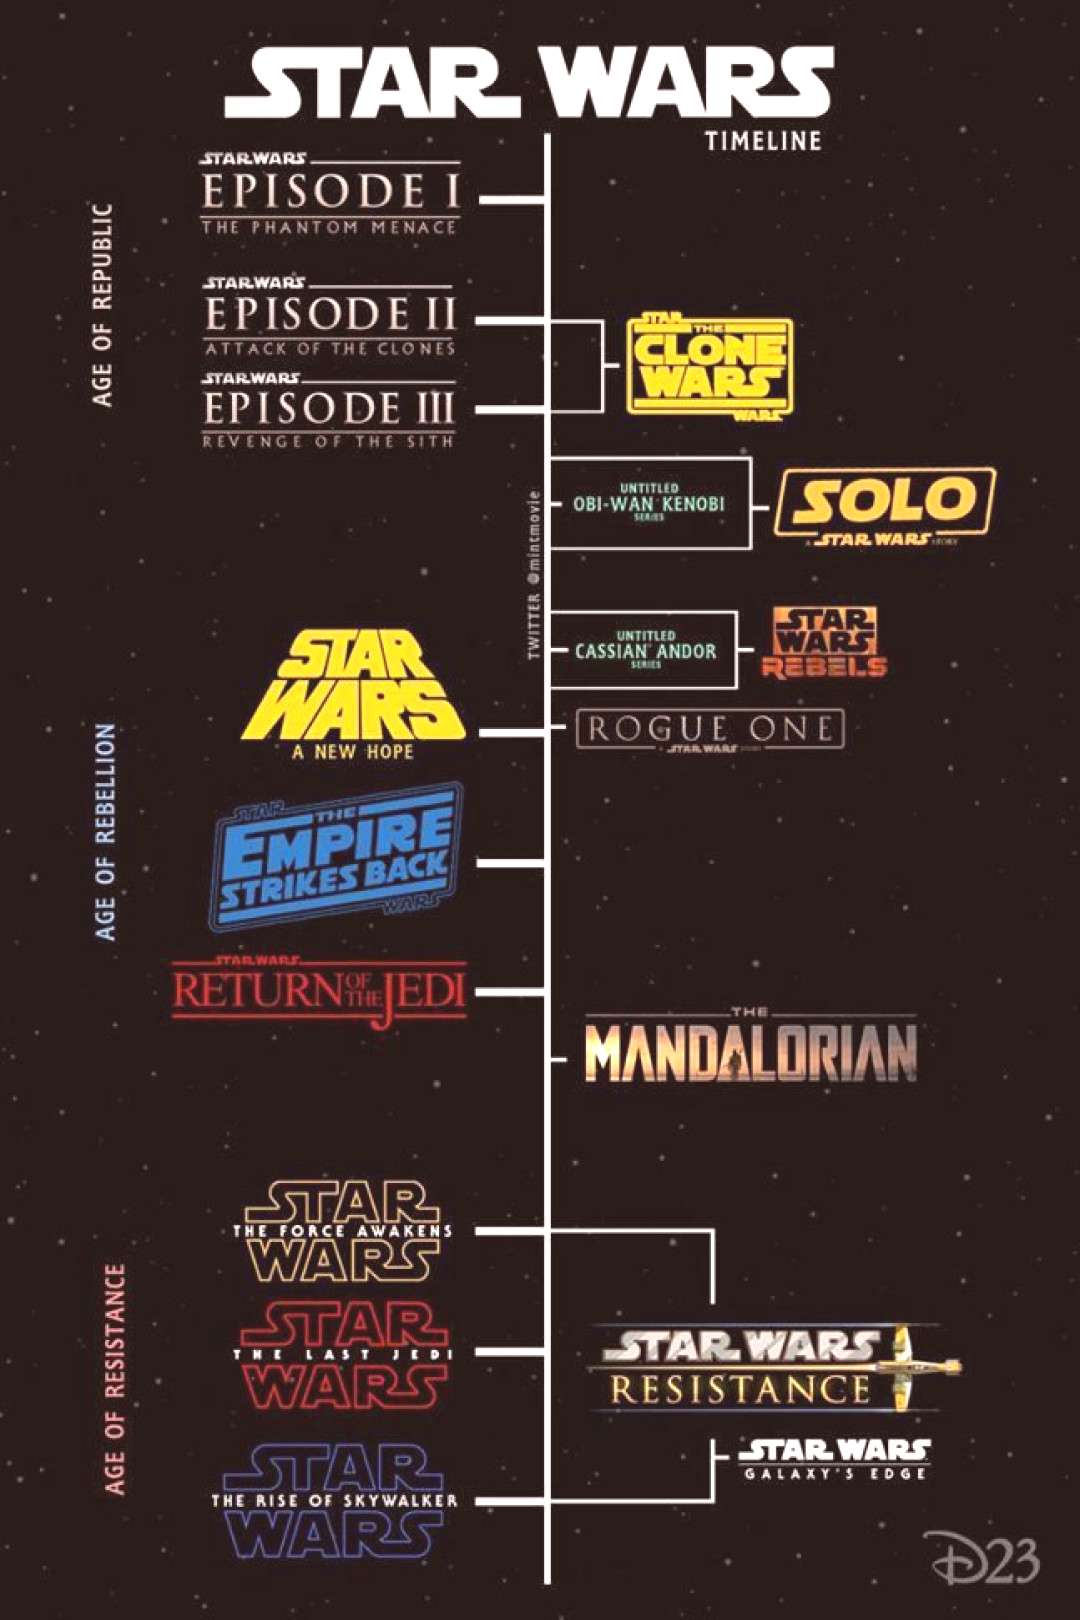 The chronological timeline order of the Star Wars movies -  The chronological timeline order of the